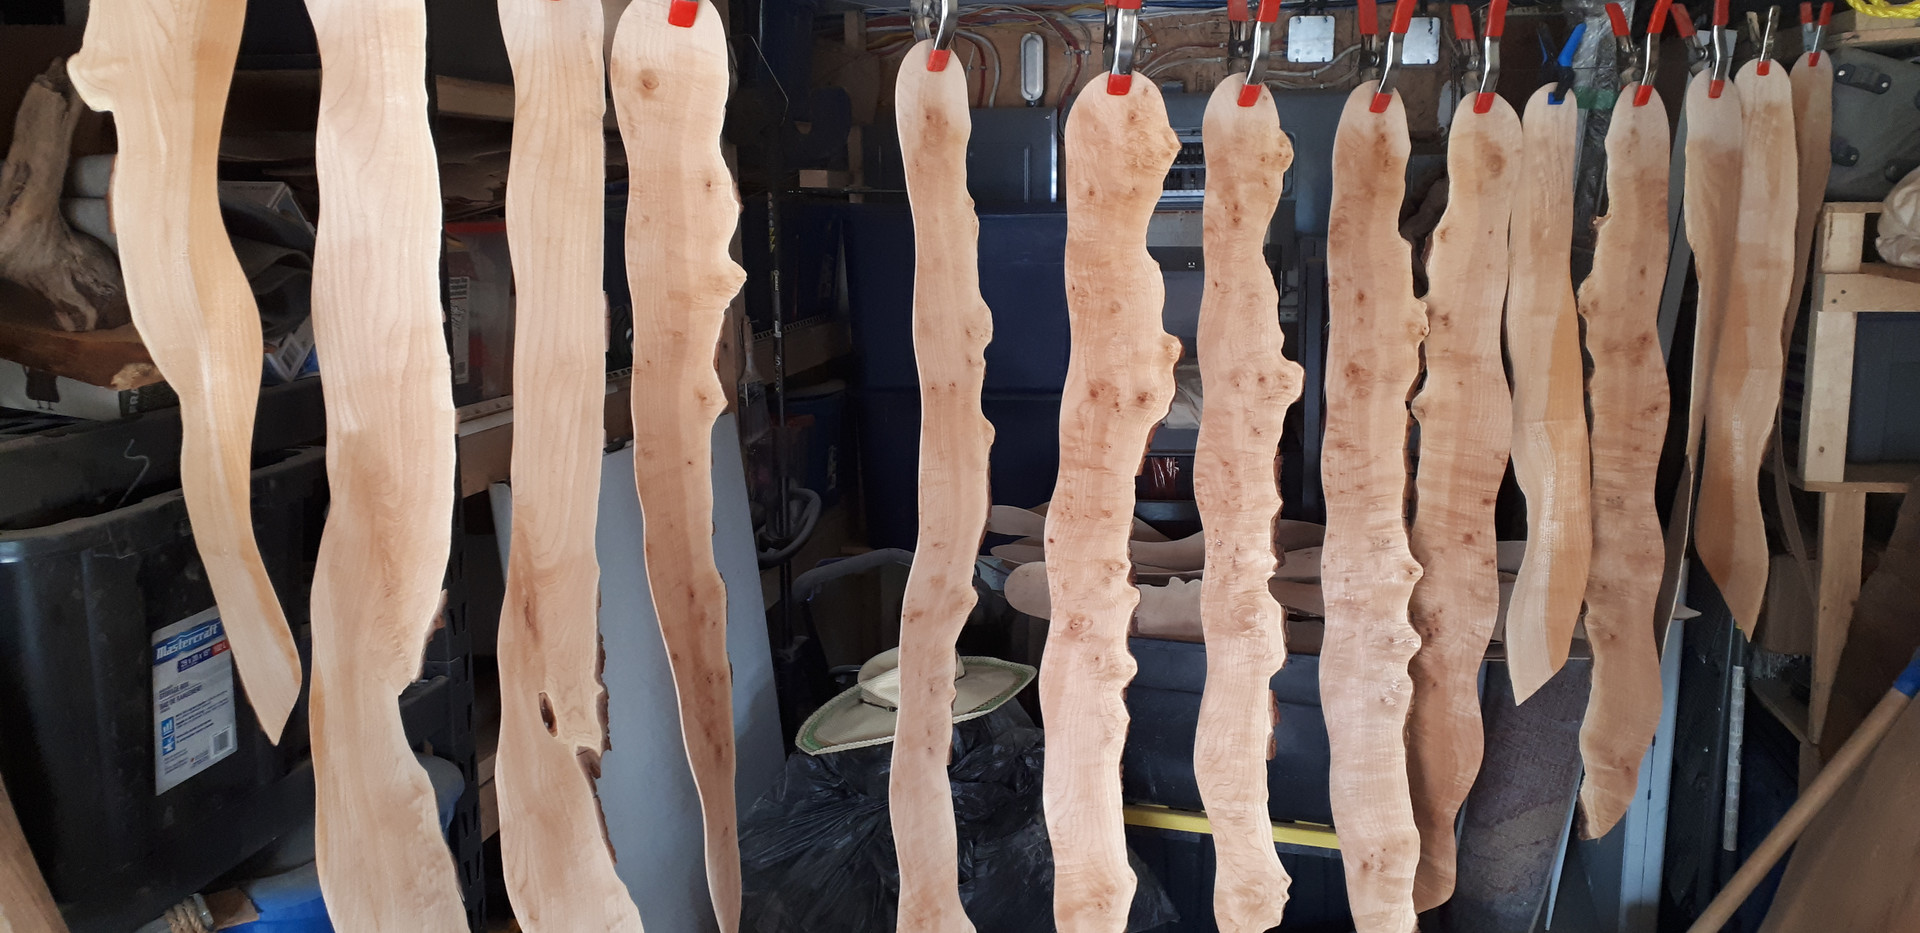 One batch of blades hanging and drying